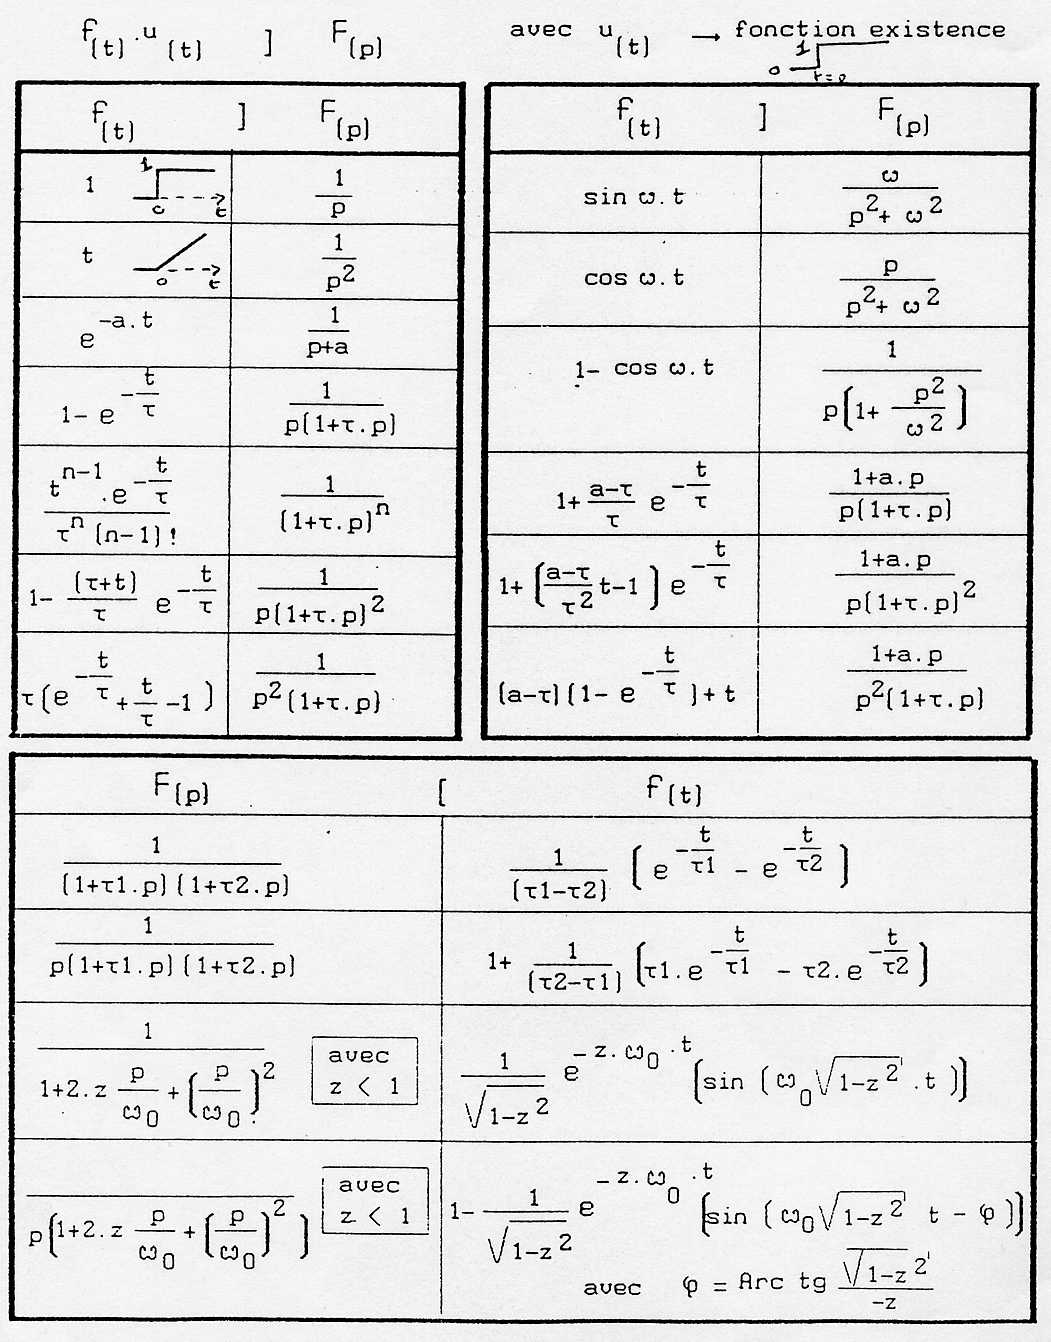 laplace table Laplace transform table function laplace transform tn, n = 0,1 n/sn+1 tn, n −1 γ(n+ 1)/sn+1 eat 1/(s−a) tneat n/(s− a)n+1 eat cos(ωt) (s− a)/((s− a)2.